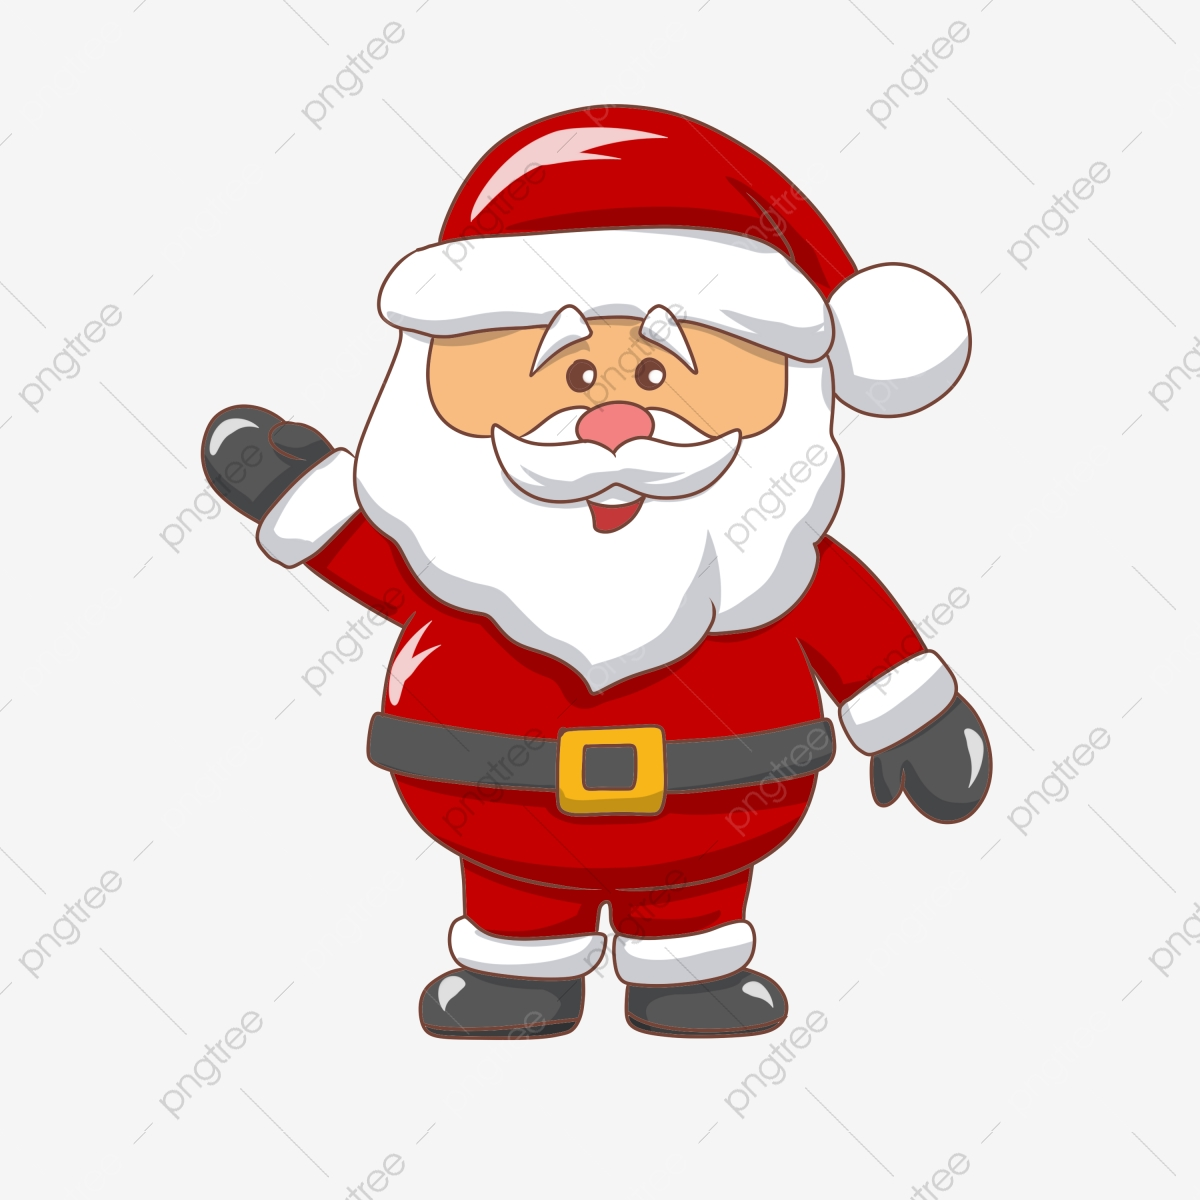 merry christmas santa holding a sign santa clipart sign clipart santa claus png transparent clipart image and psd file for free download https pngtree com freepng merry christmas santa holding a sign 1217142 html